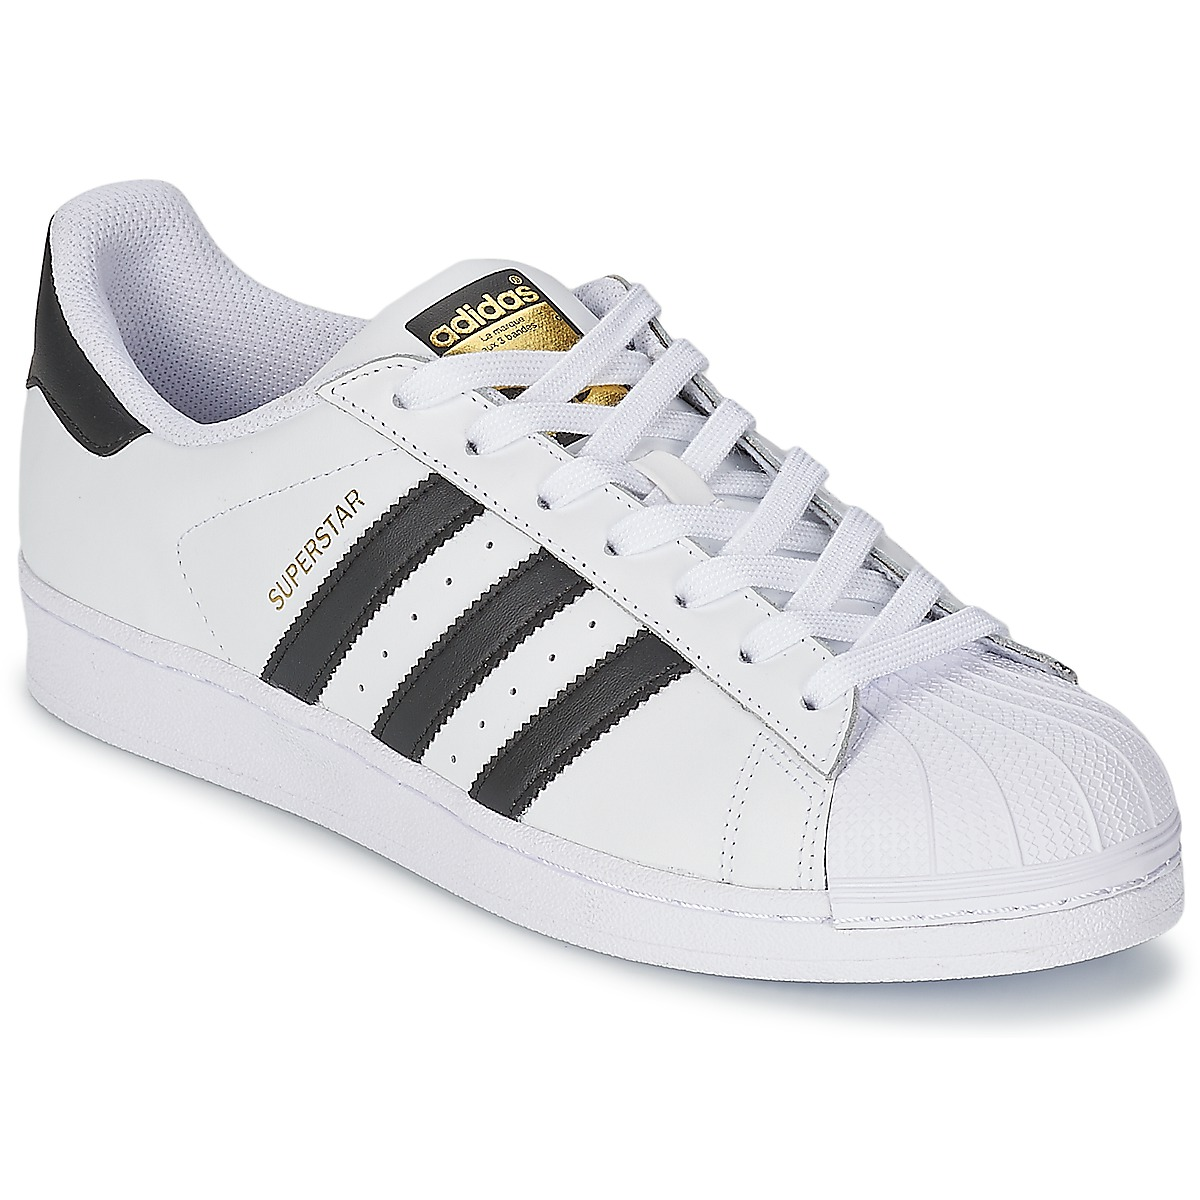 adidas Originals SUPERSTAR White / Black